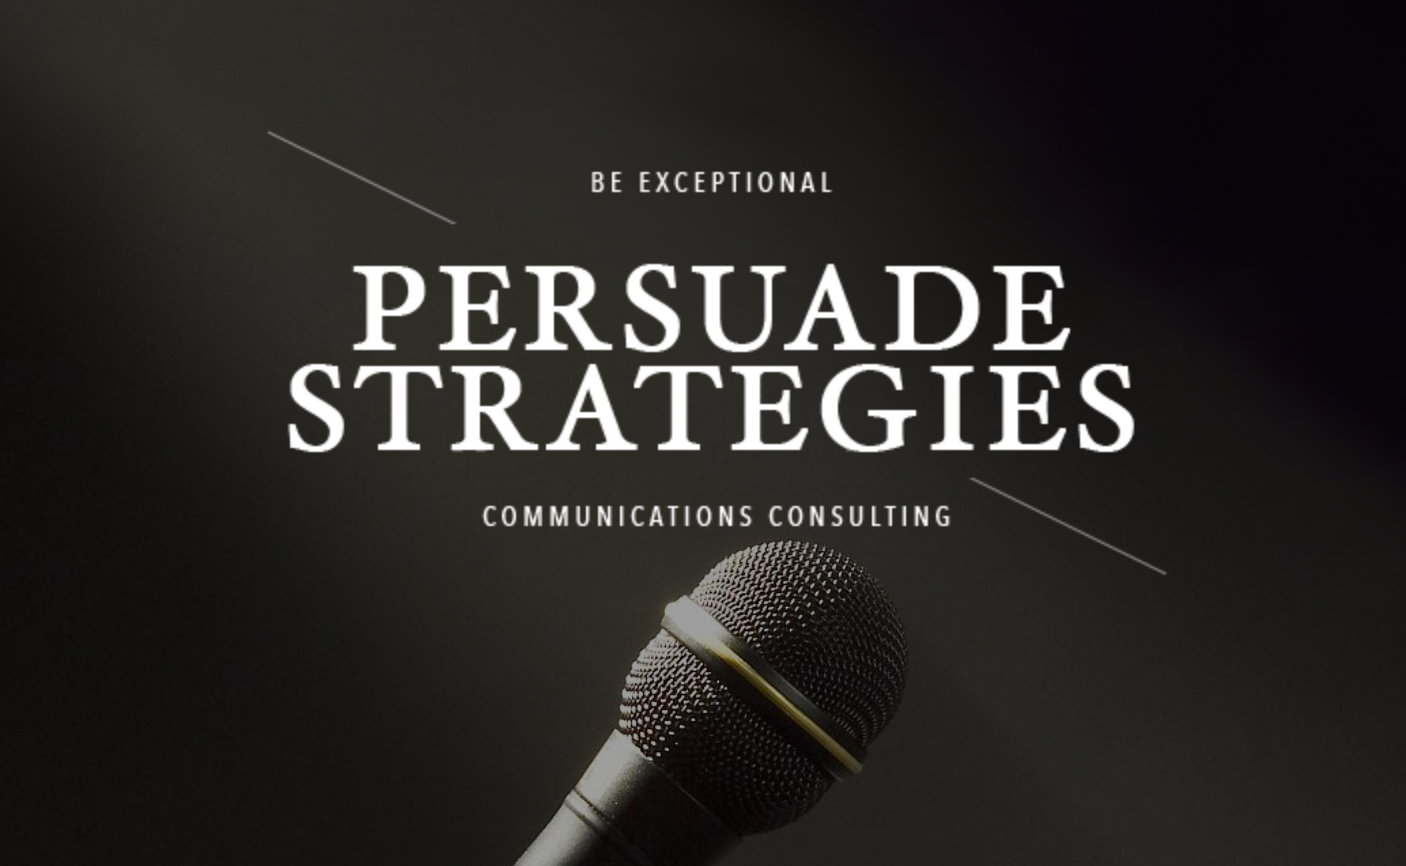 Persuade Strategies